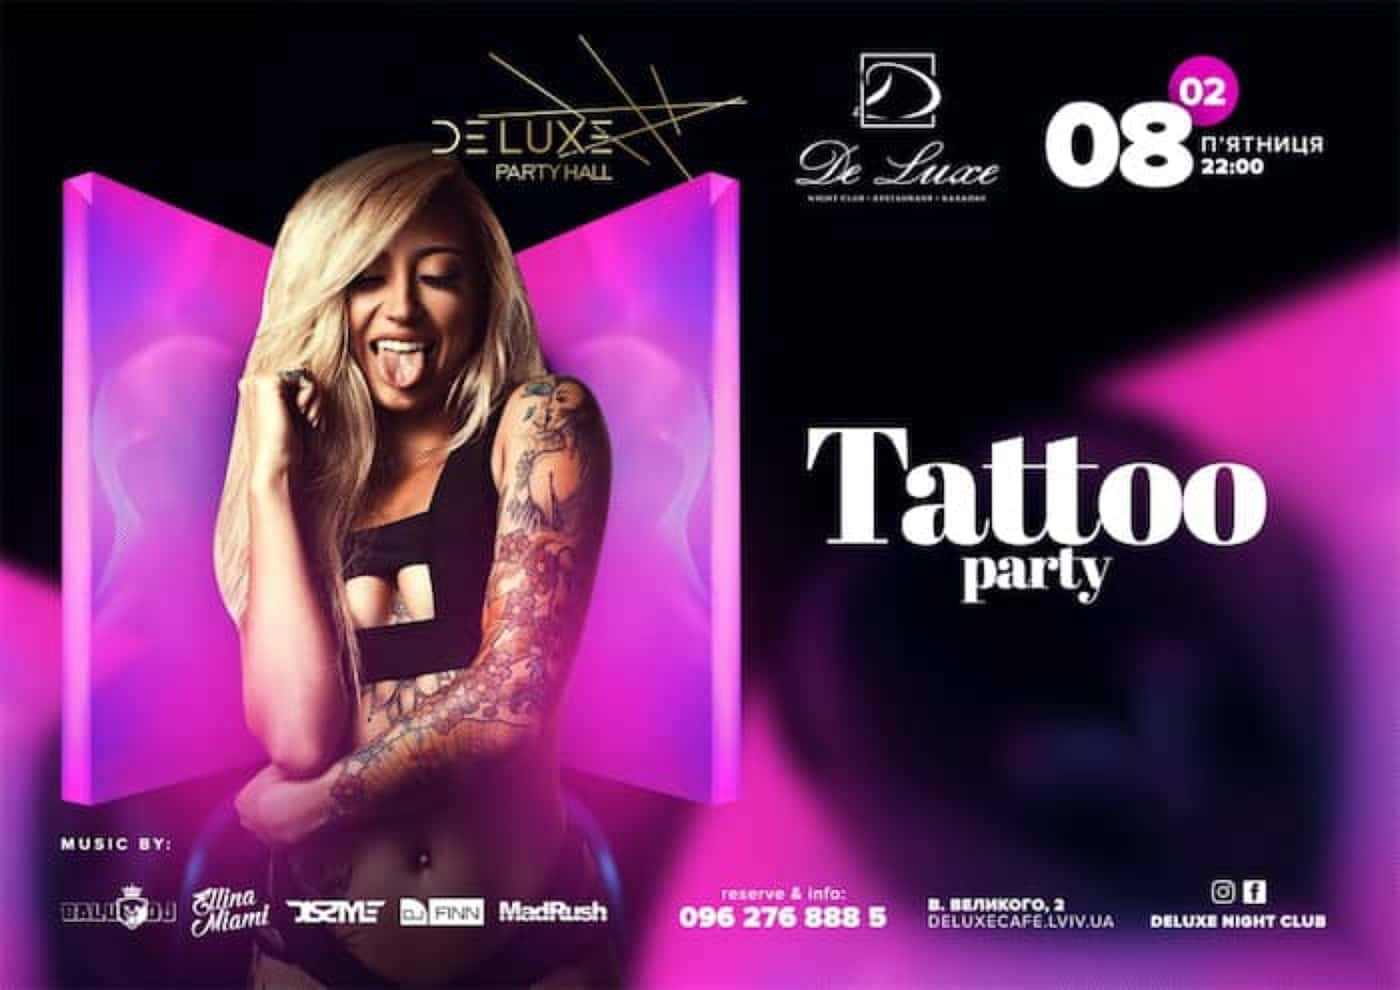 Tatto Party